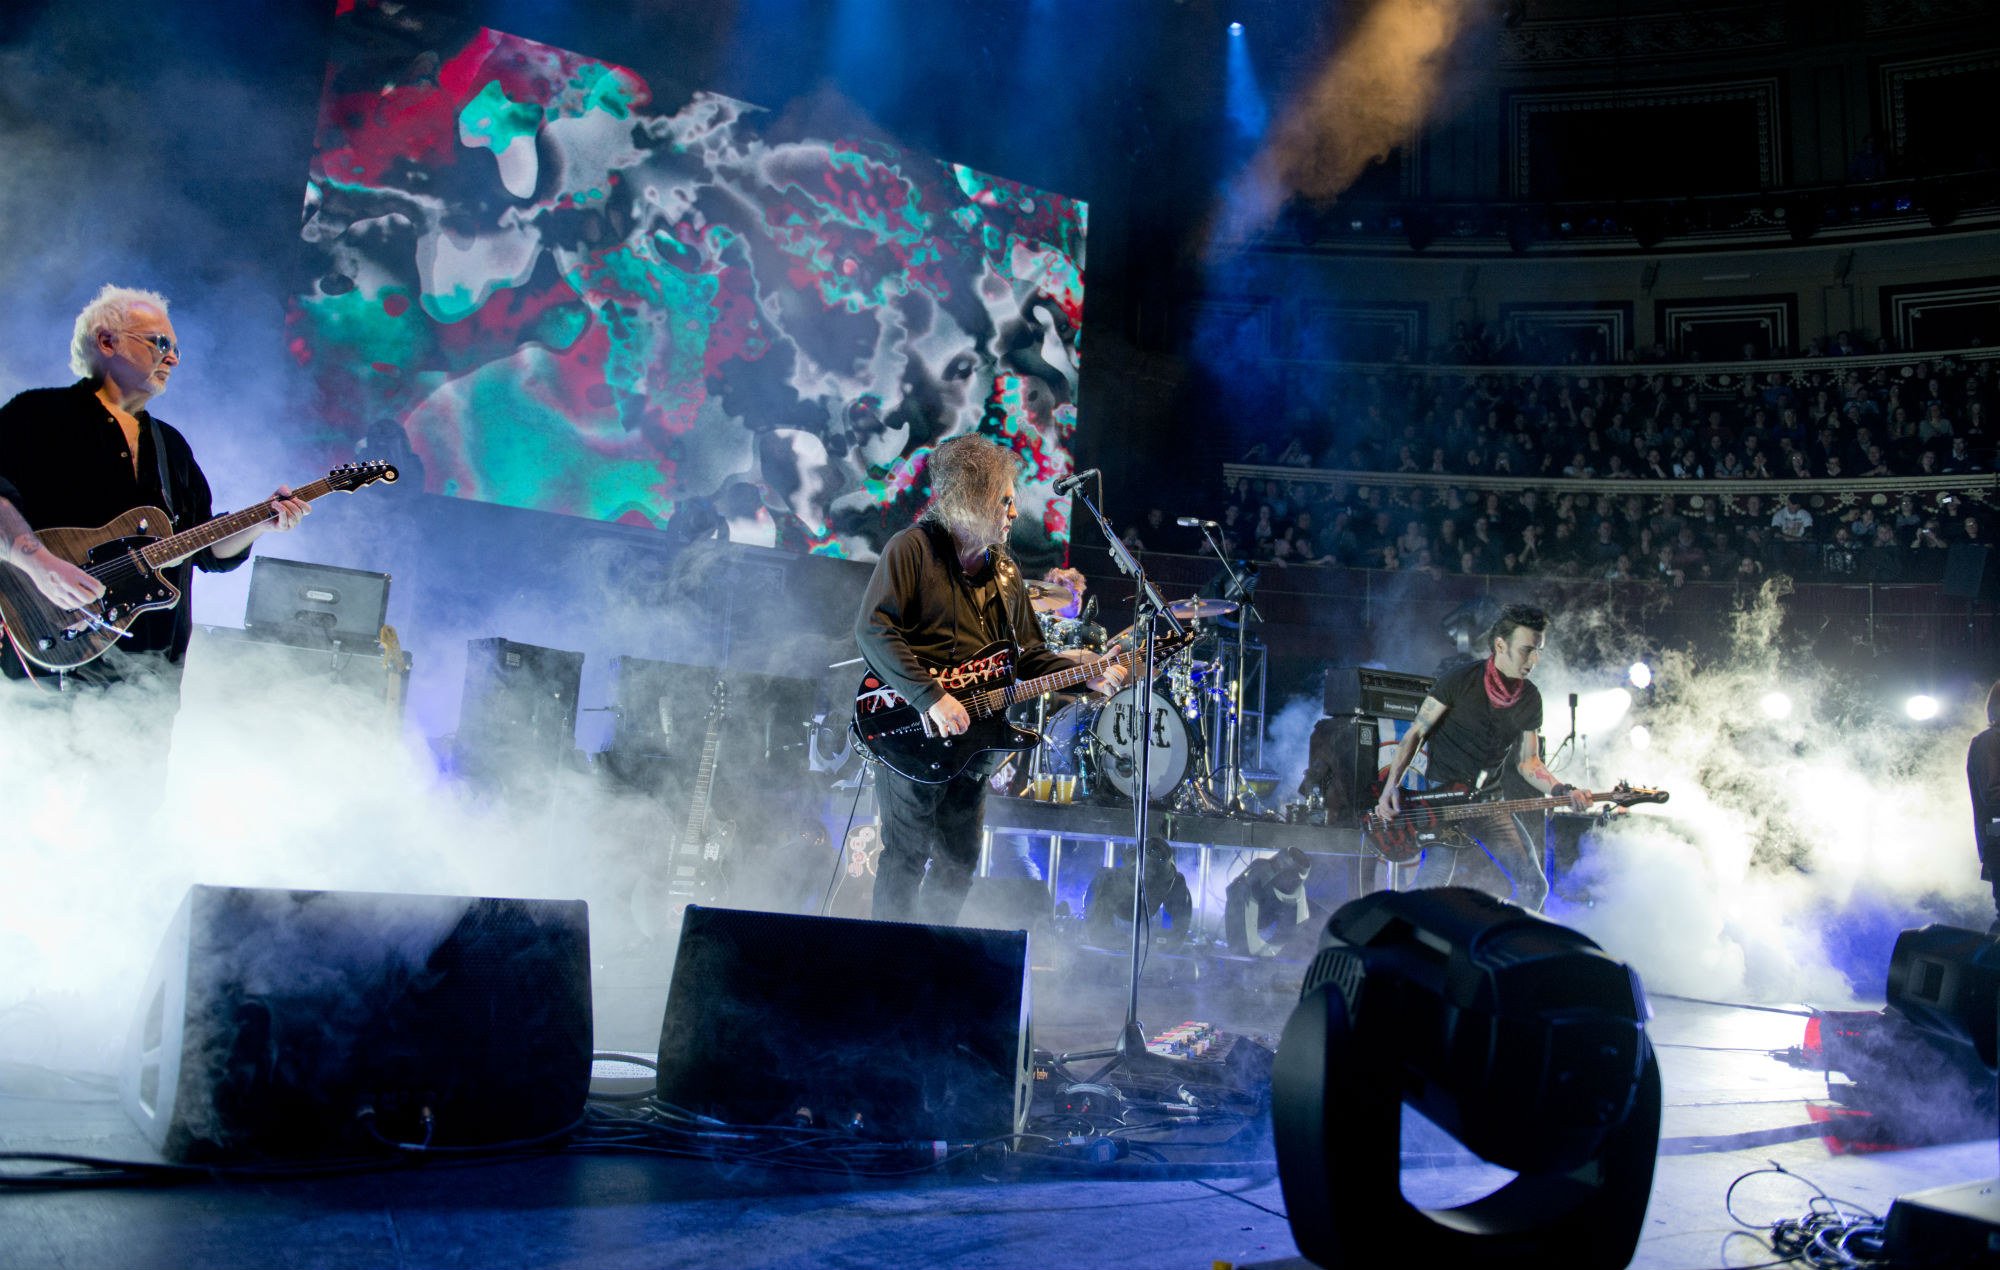 The Cure perform on stage at Royal Albert Hall on March 28, 2014 in London, United Kingdom. (Photo by Gaelle Beri/Redferns via Getty Images